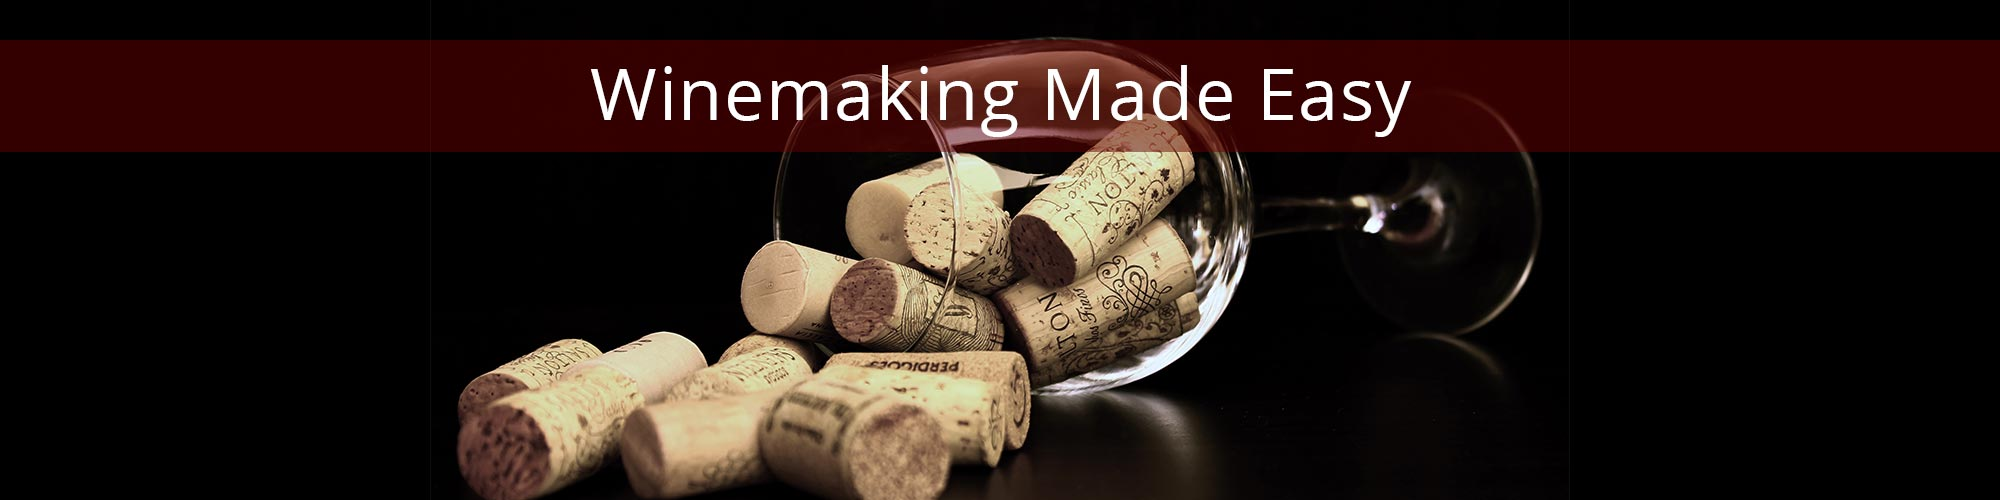 1Winemaking made easy